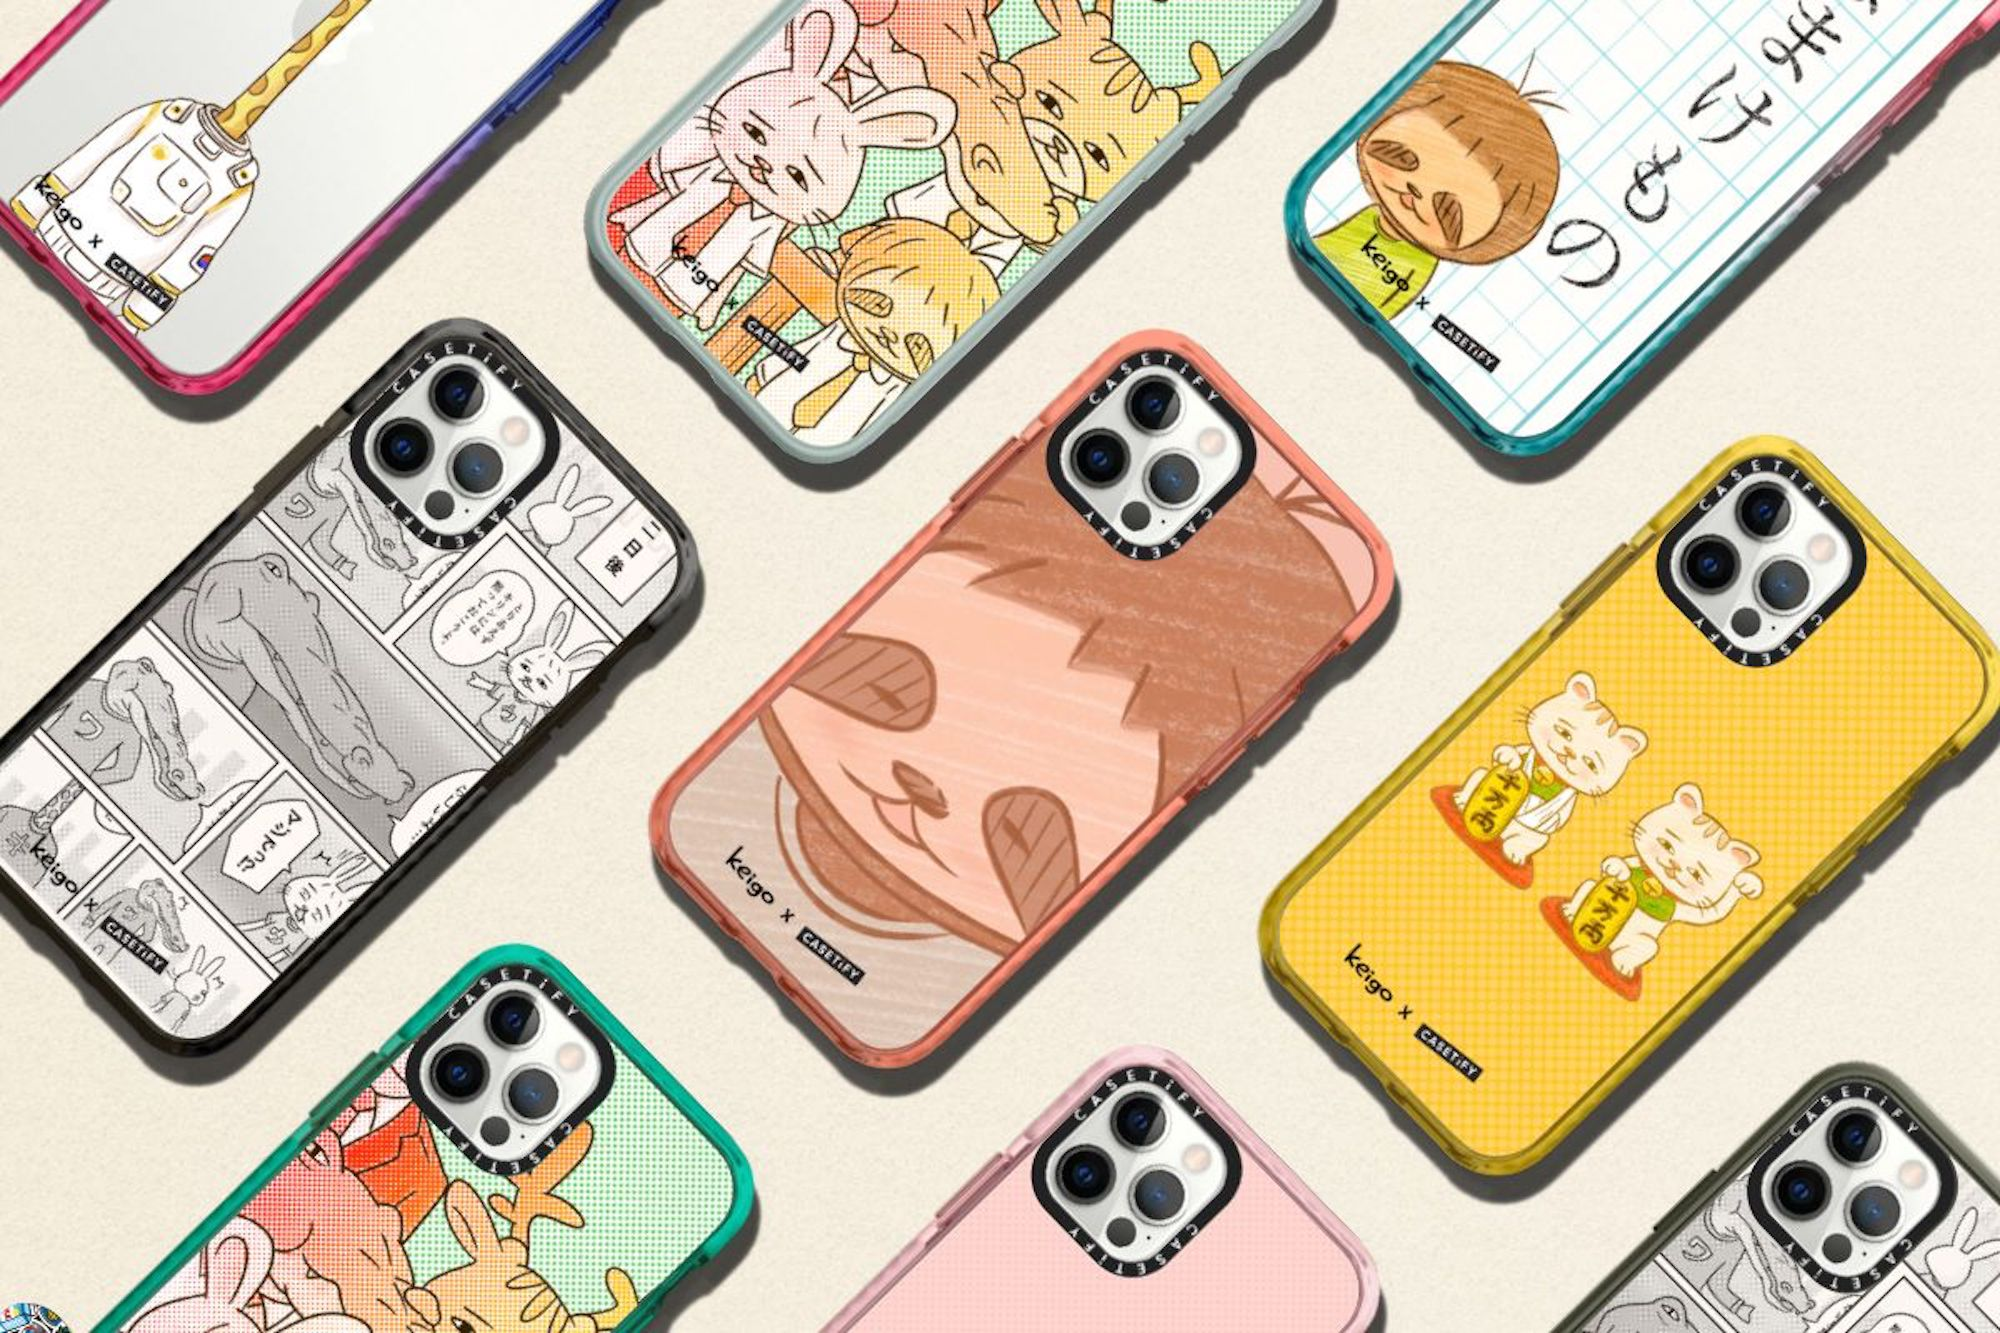 Keigo x CASETiFY tech accessory collection, sloth snapshot selfie and co